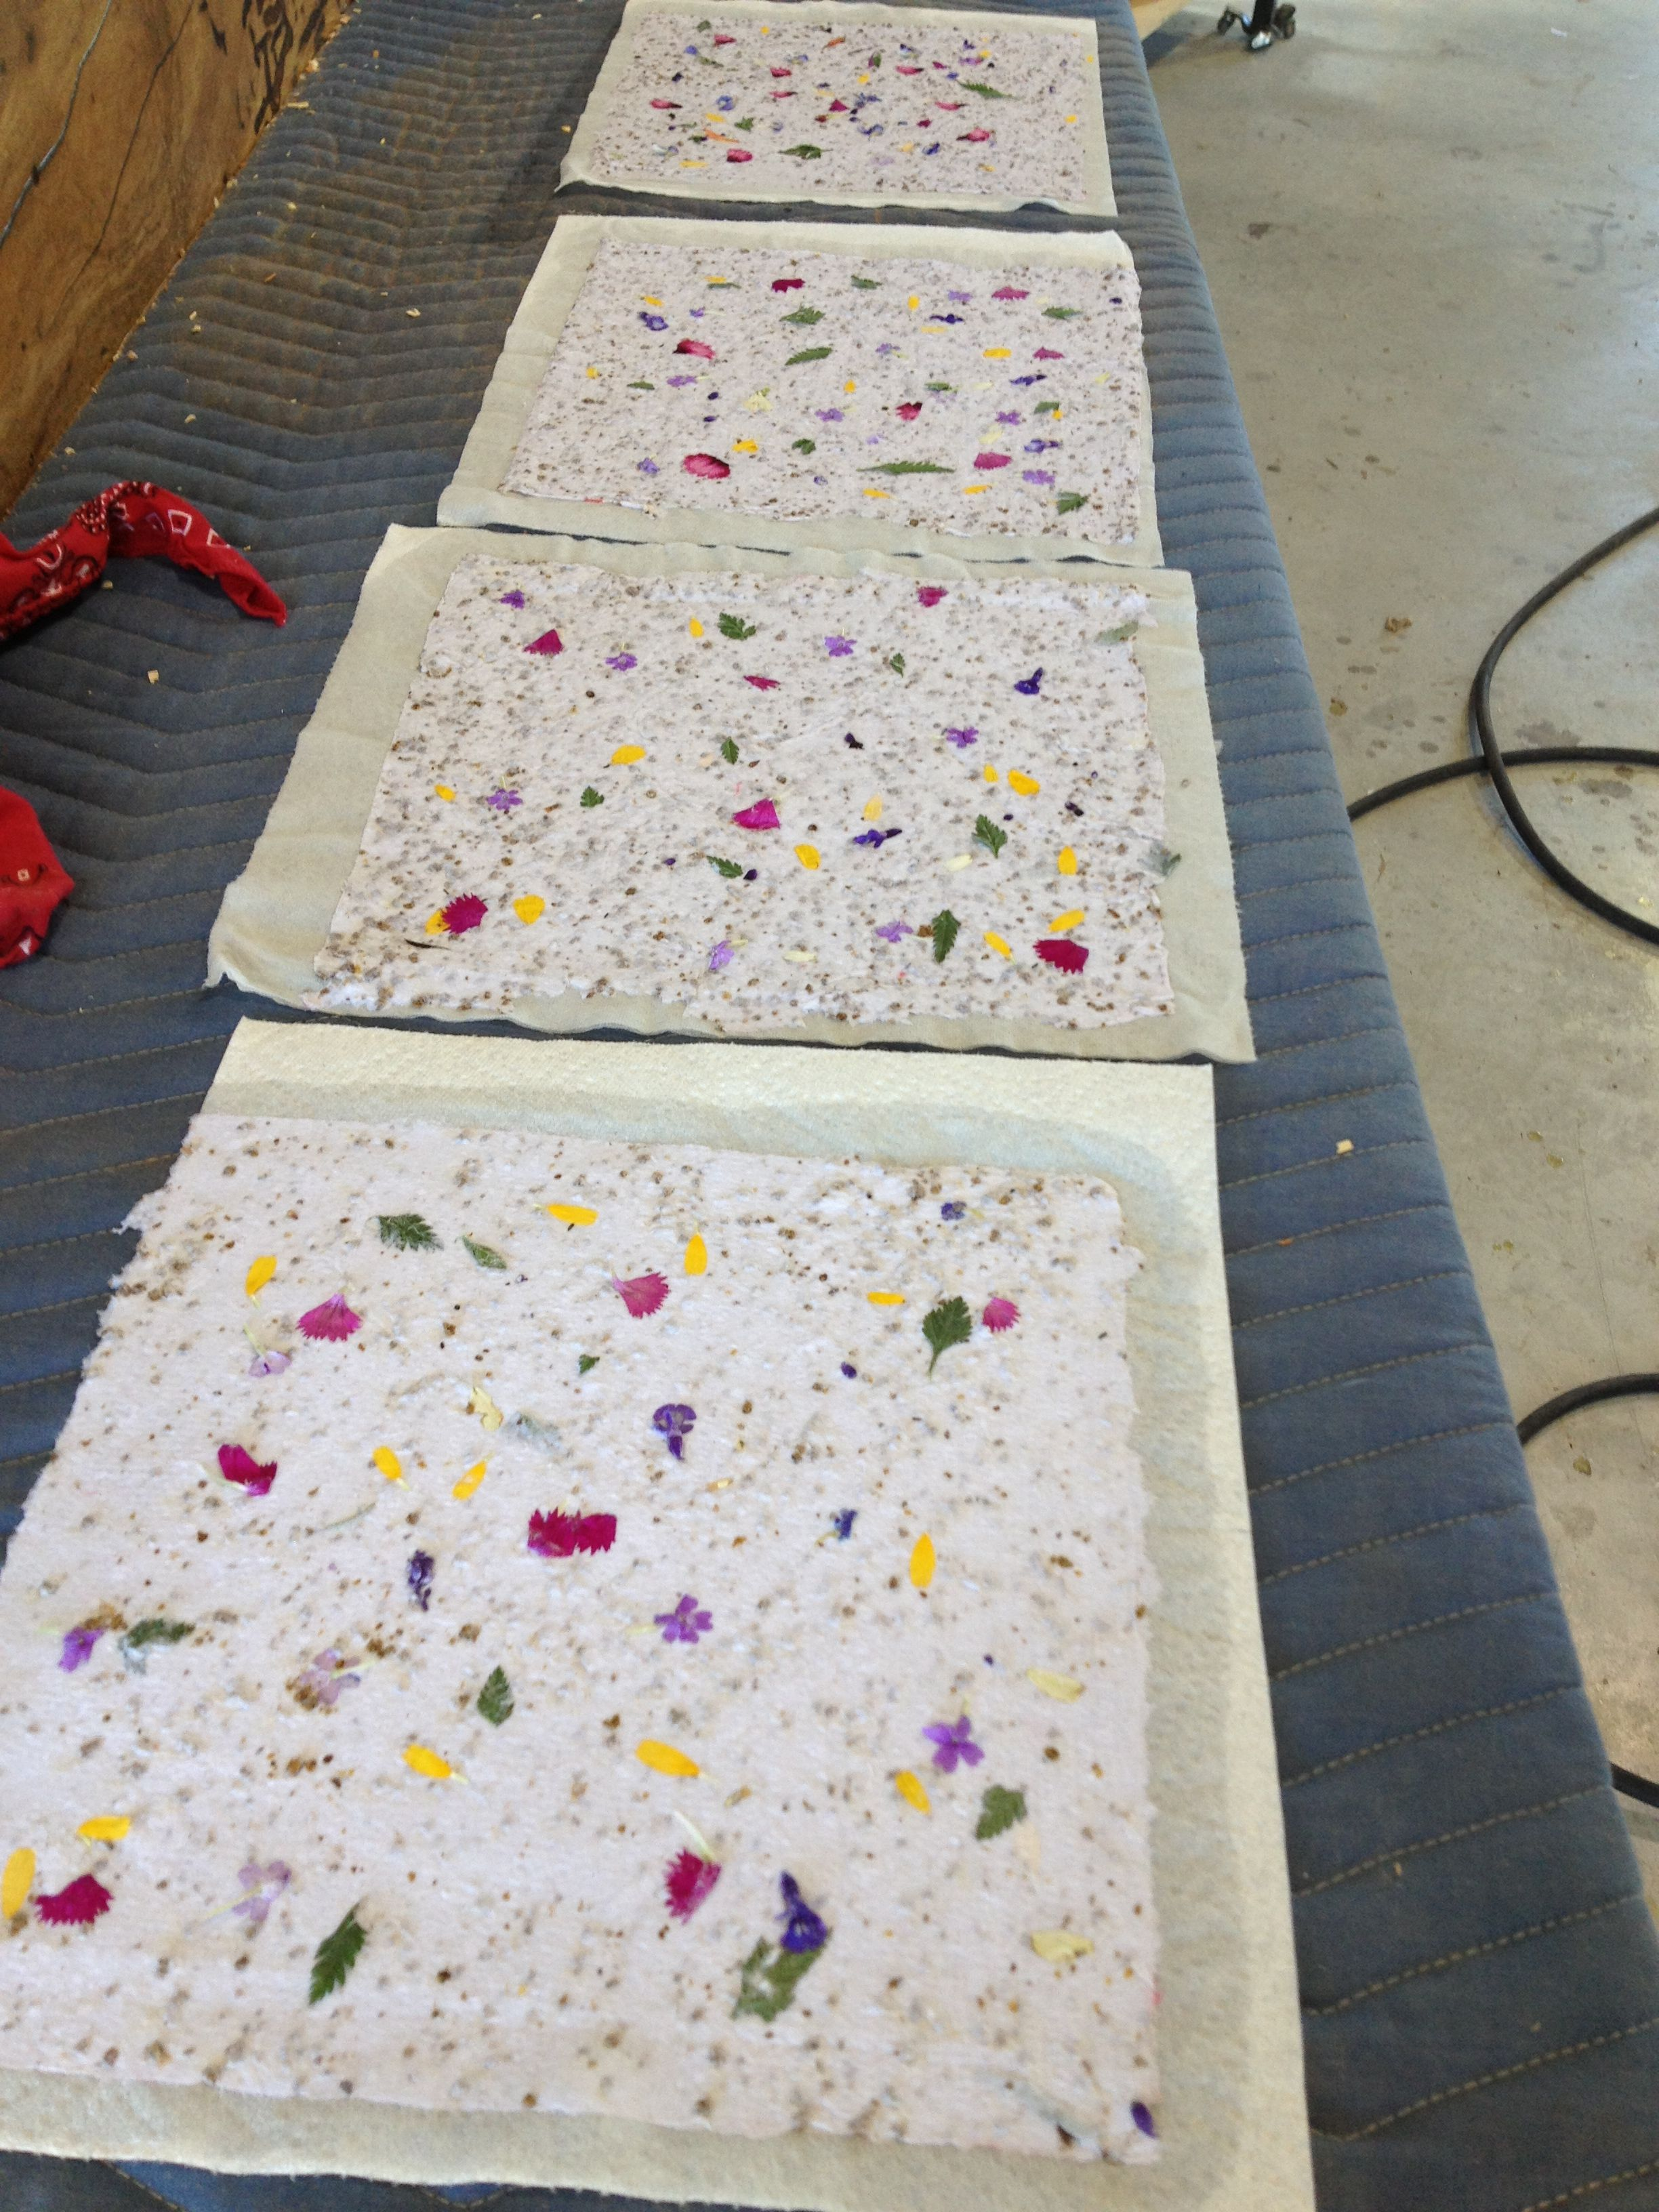 Home Made Paper With Wildflower Seeds Flower Peddles And Leaves